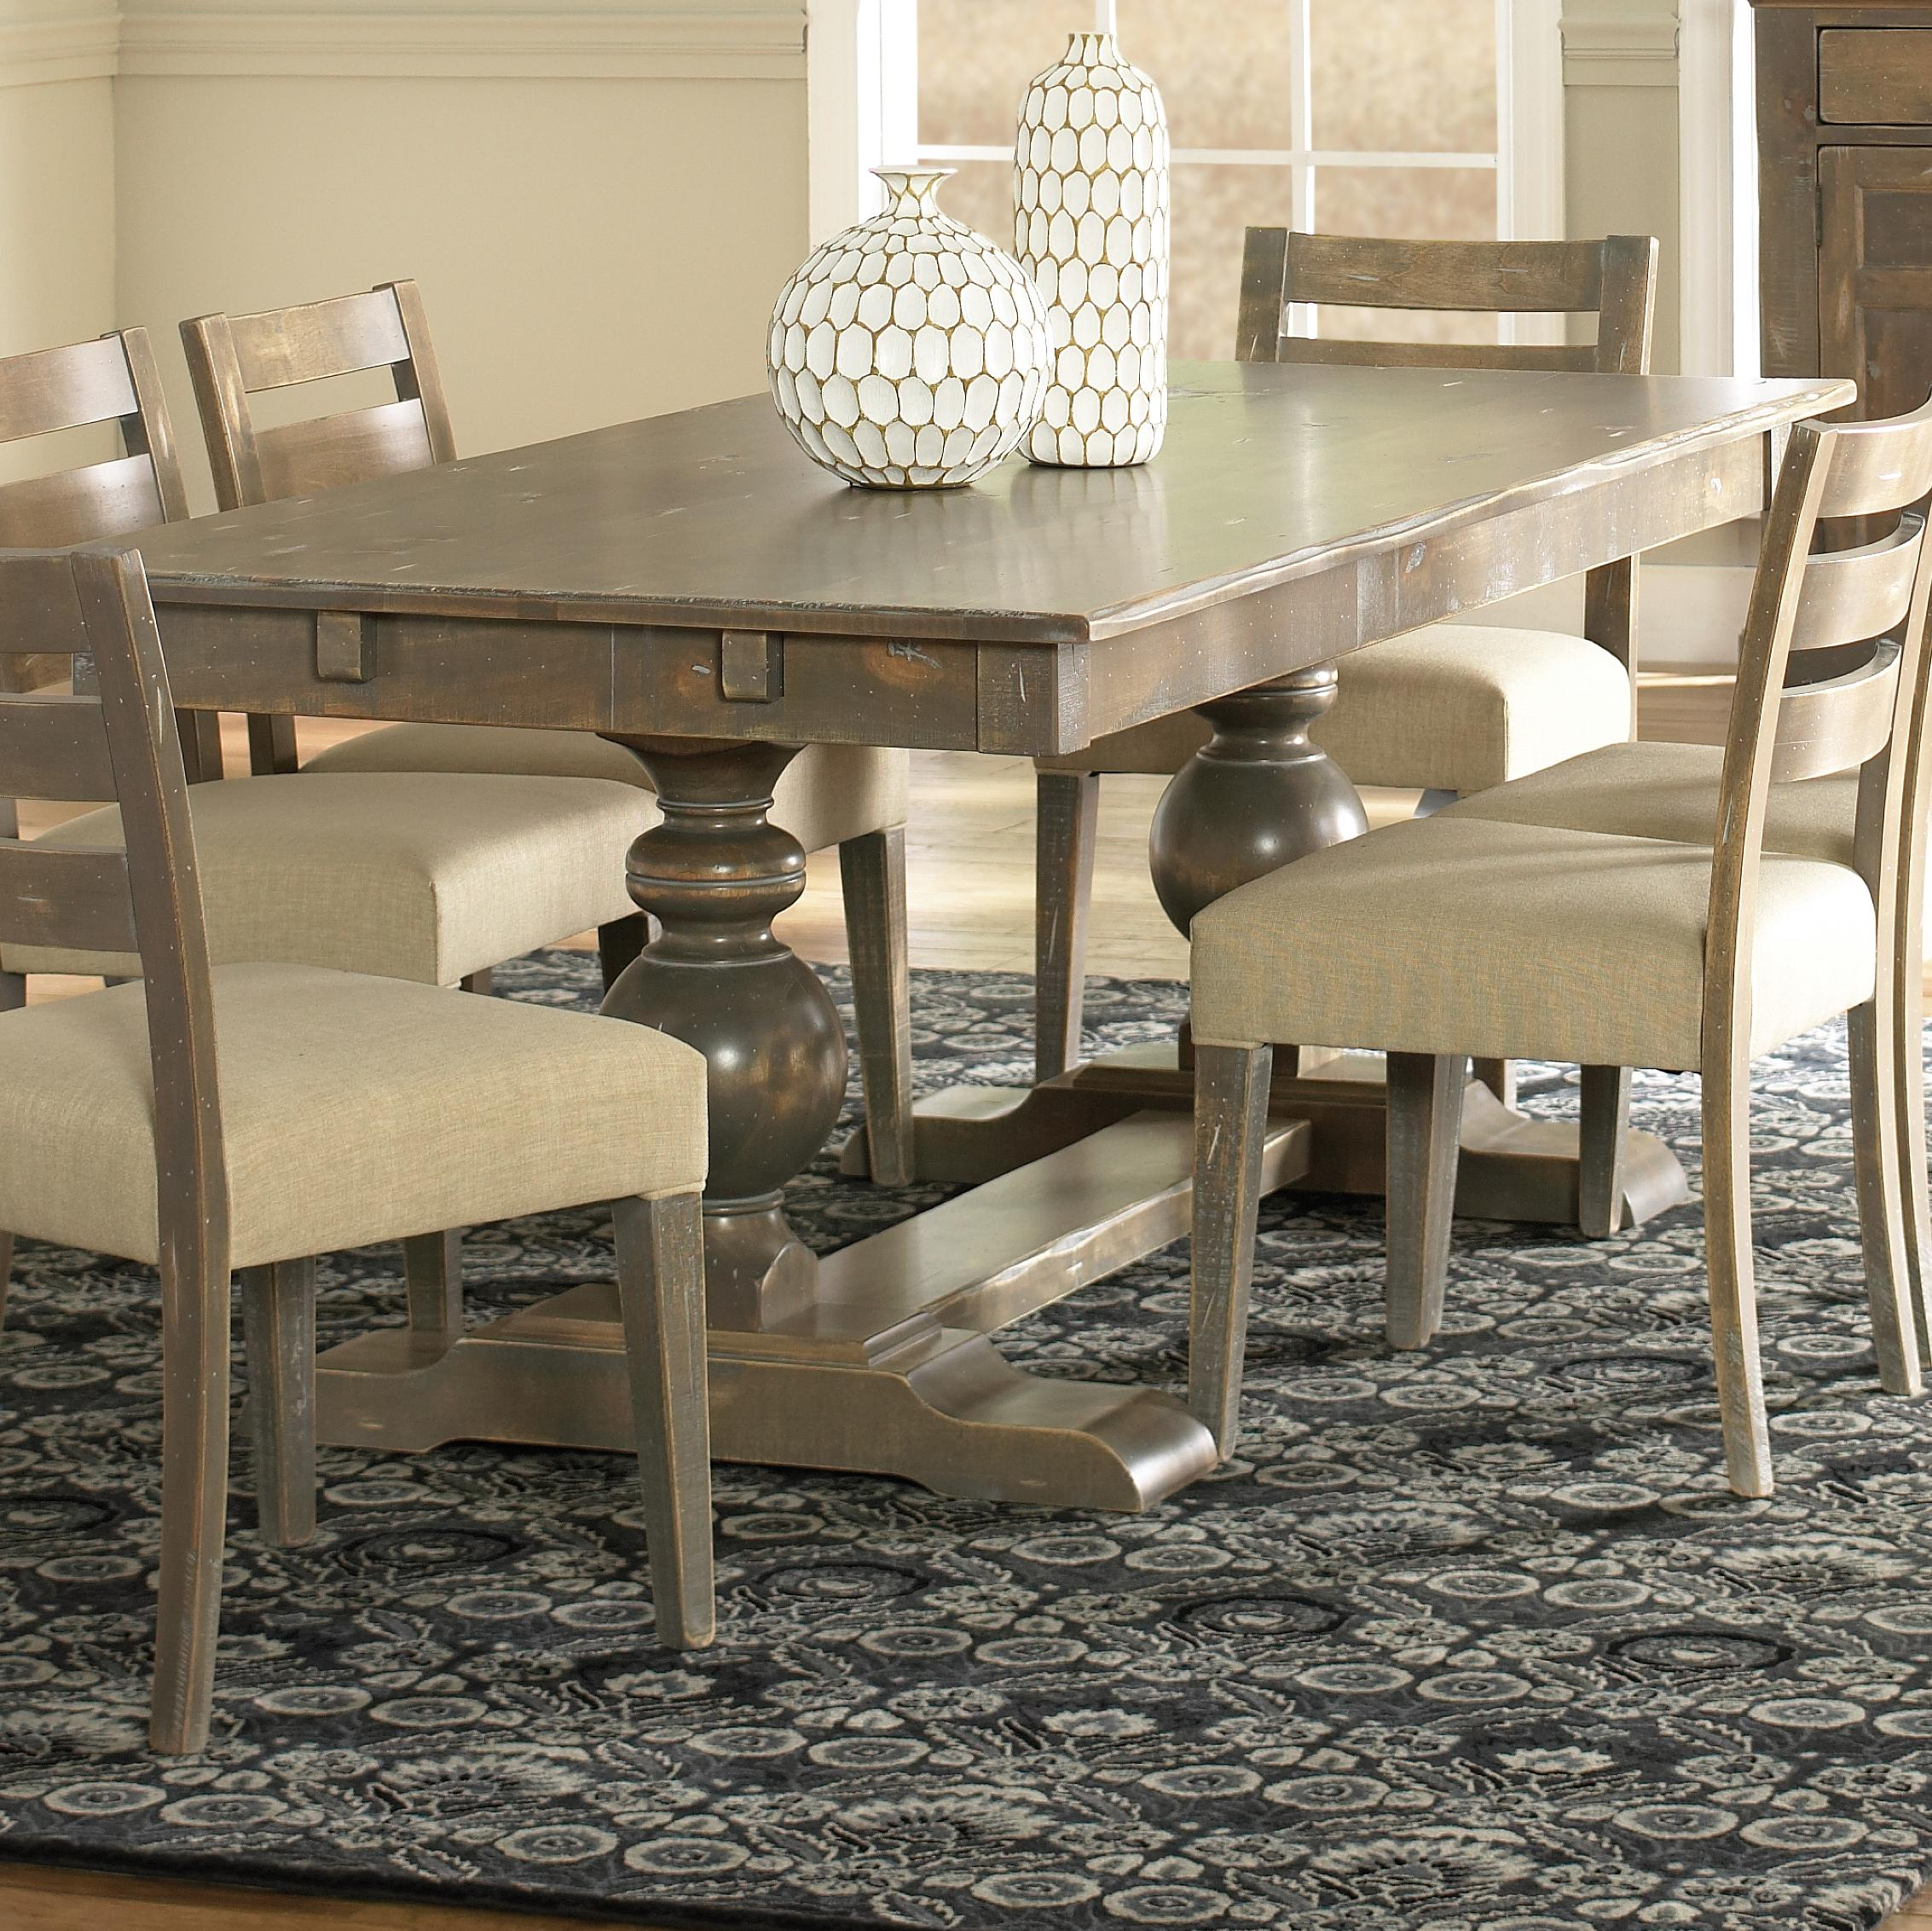 canadel champlain custom dining tre038784949dbtnf bas customizable rectangular table with. Black Bedroom Furniture Sets. Home Design Ideas